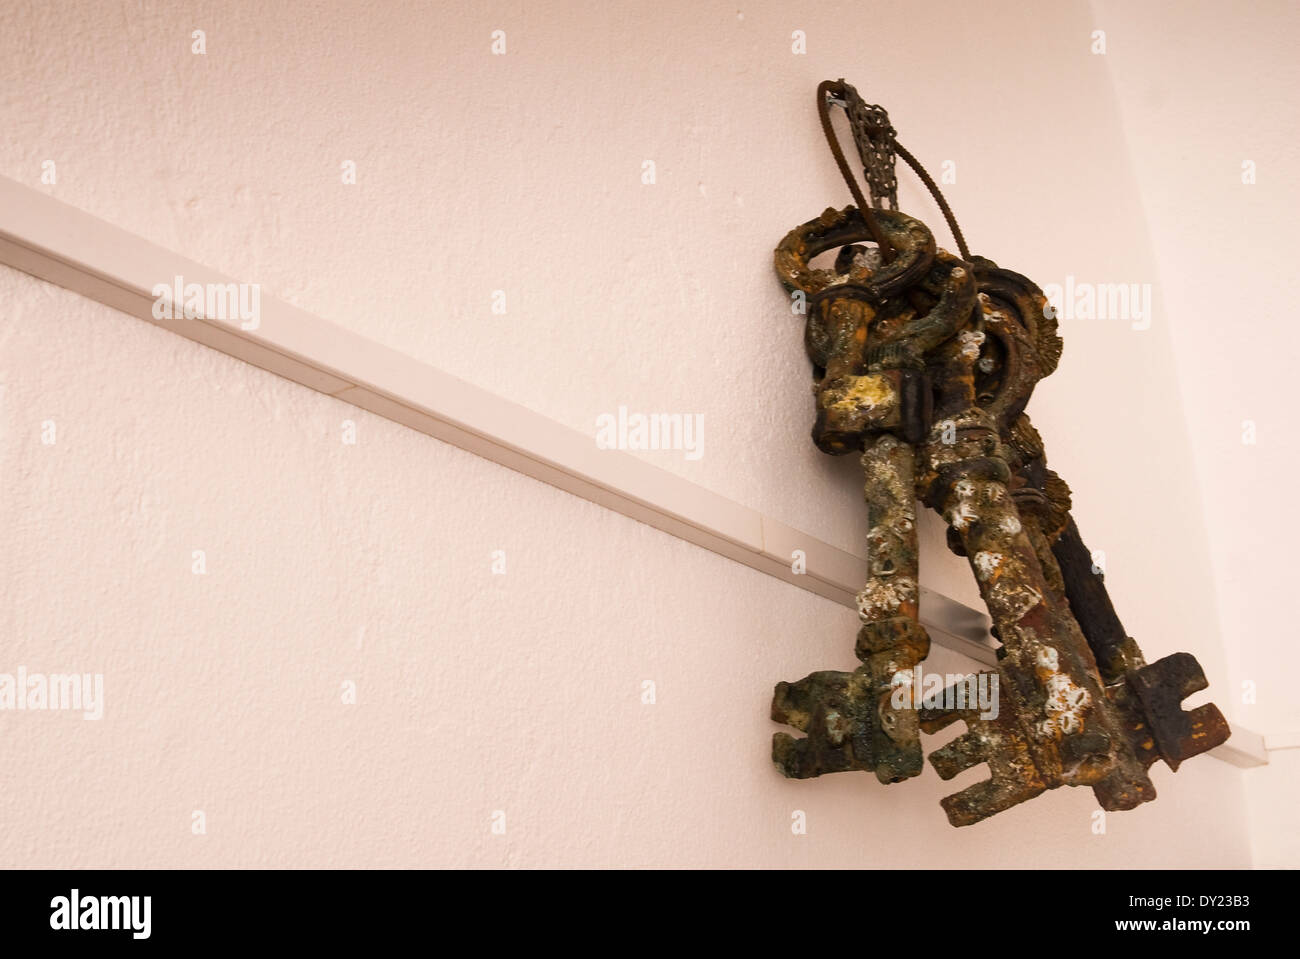 Old rusty keys from the lighthouse at Cape St. Vincent, Sagres, Portugal - Stock Image